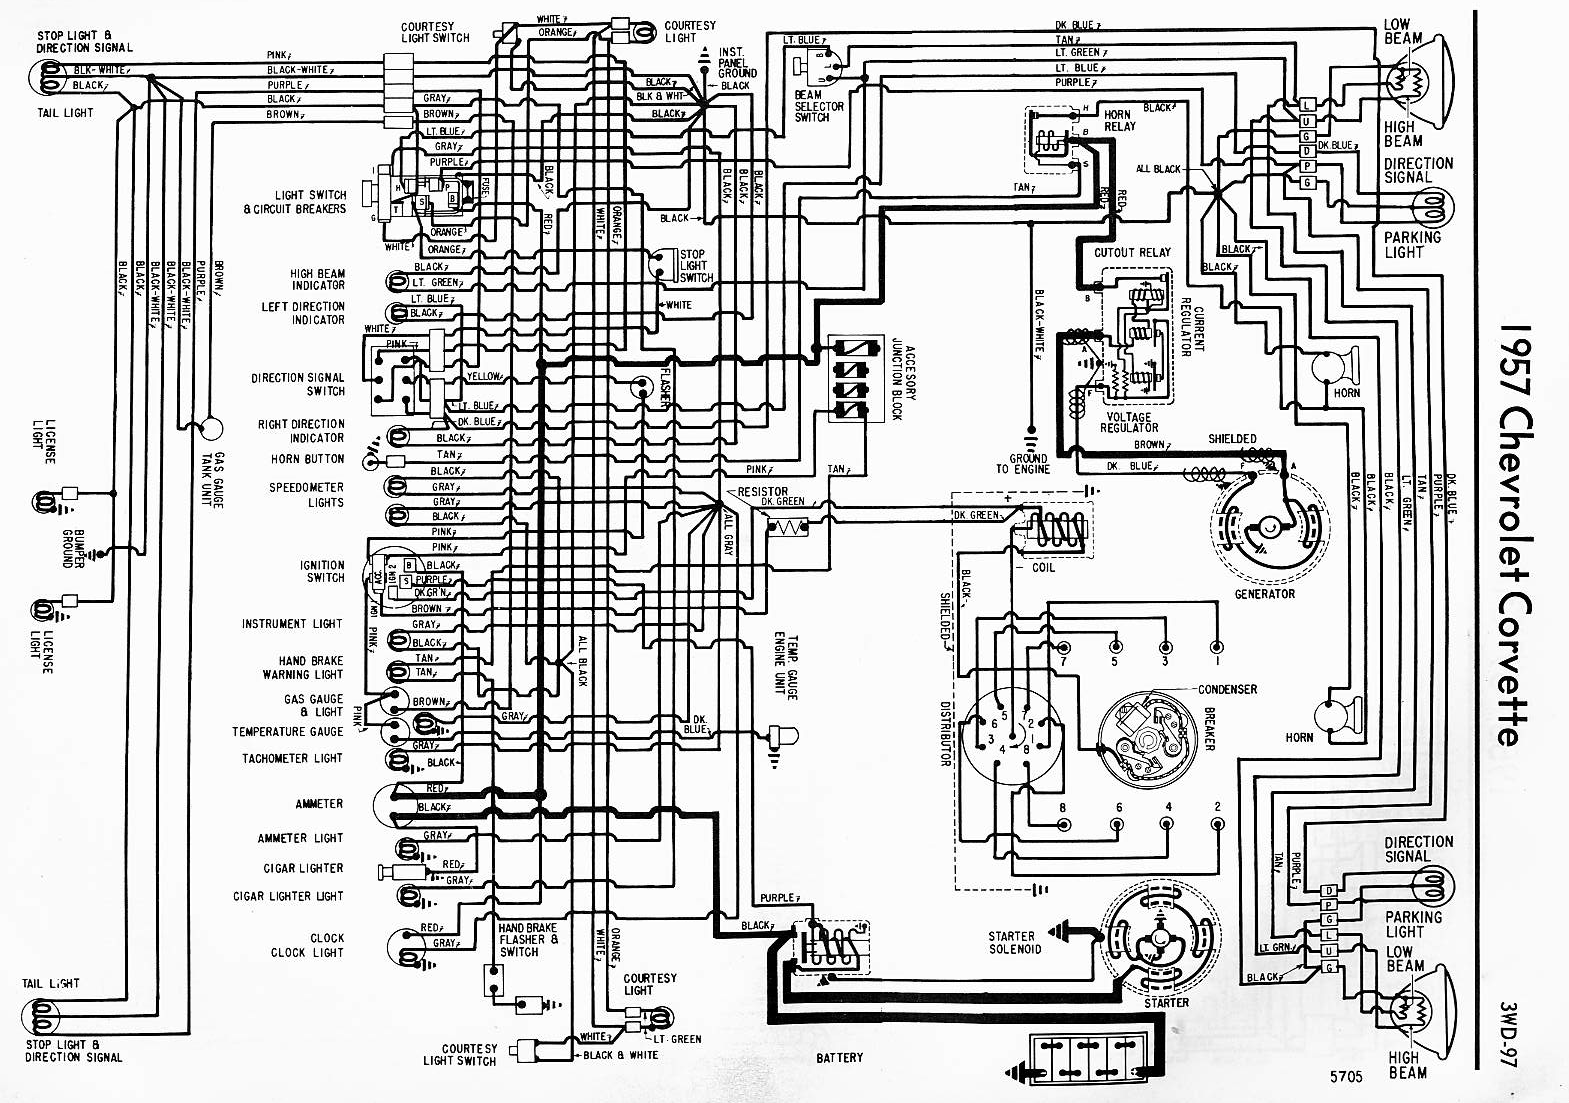 1972 Corvette Fuse Block Diagram Electrical Wiring Gmg Body Box 72 Library Rh 71 Bloxhuette De 05 Dodge Durango